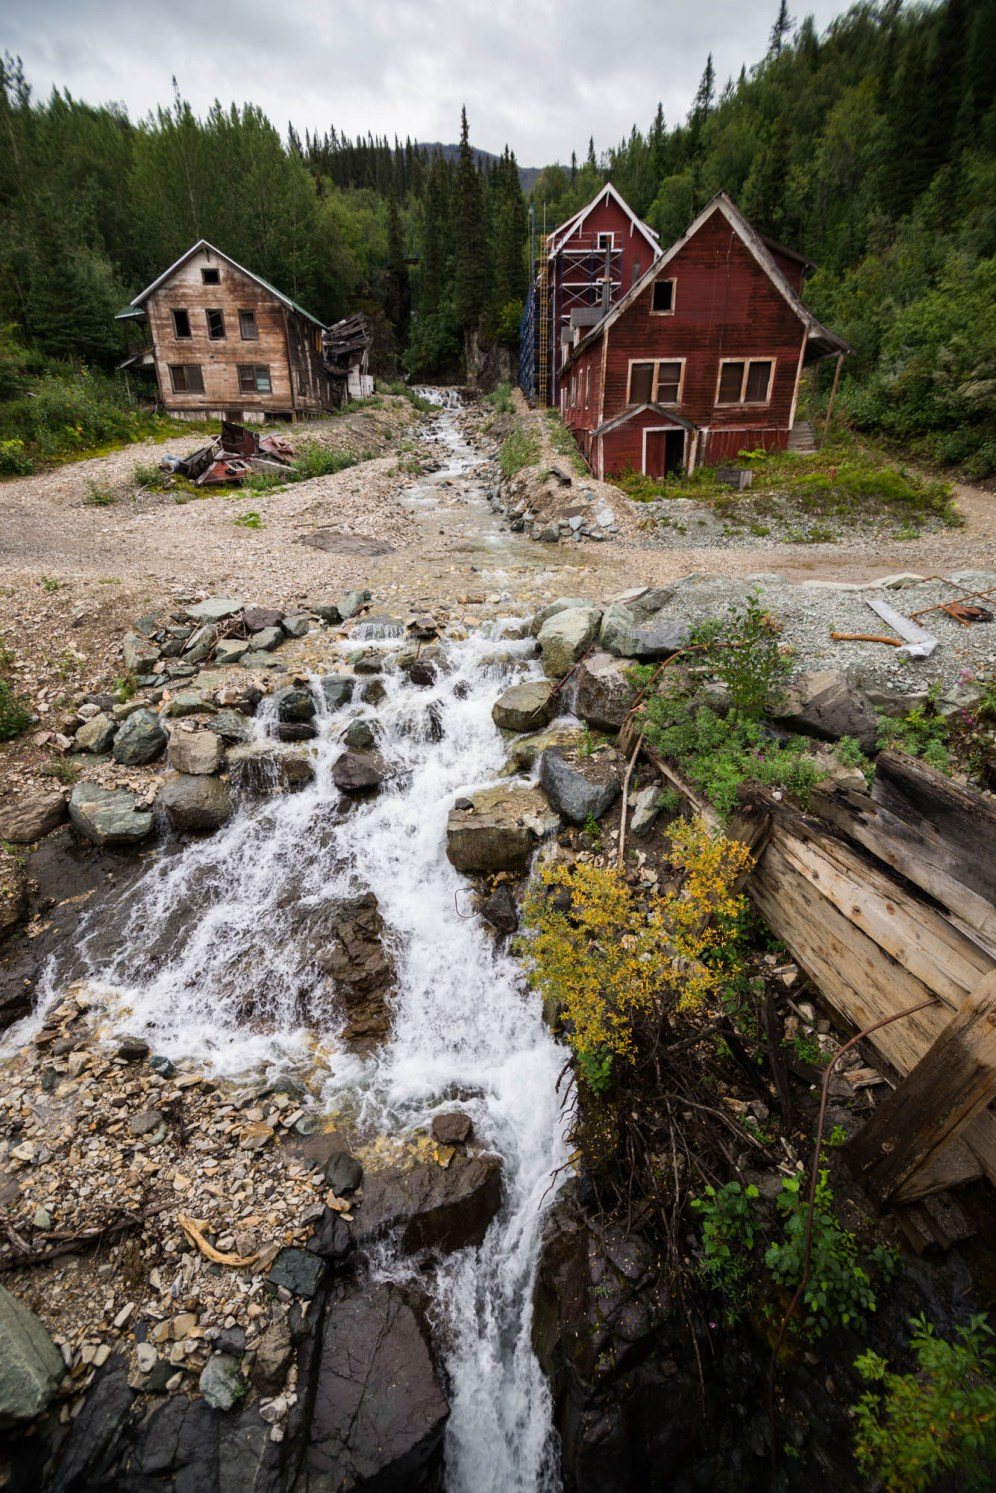 Two old abandoned cabins sit on both sides of a small stream flowing through gravel and rocks. Vertical orientation.